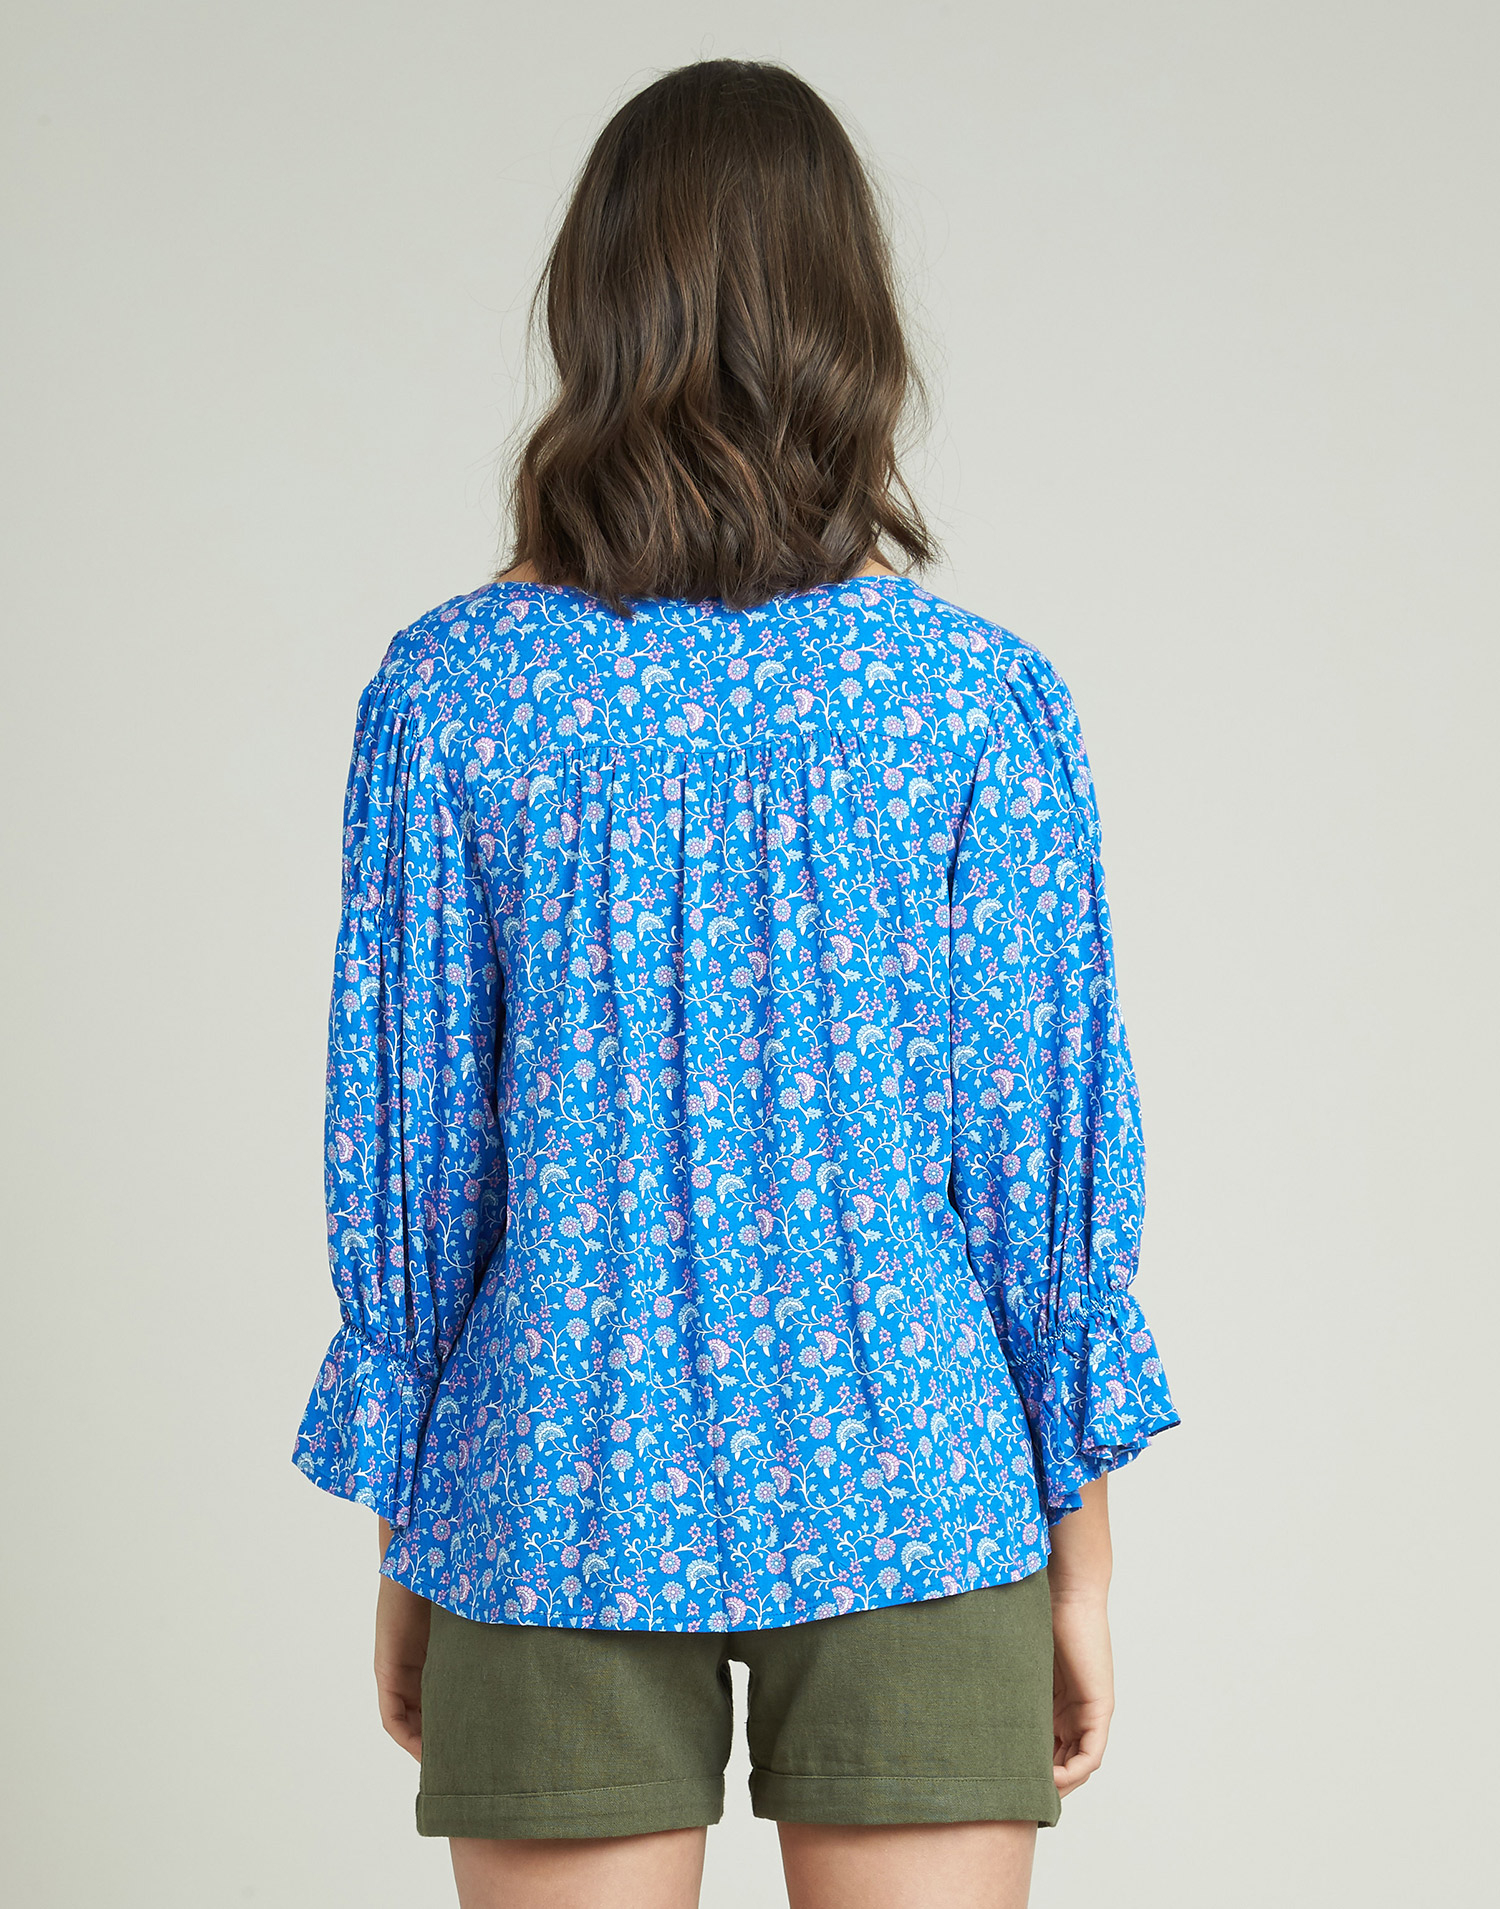 Flower print shirt with cuffs